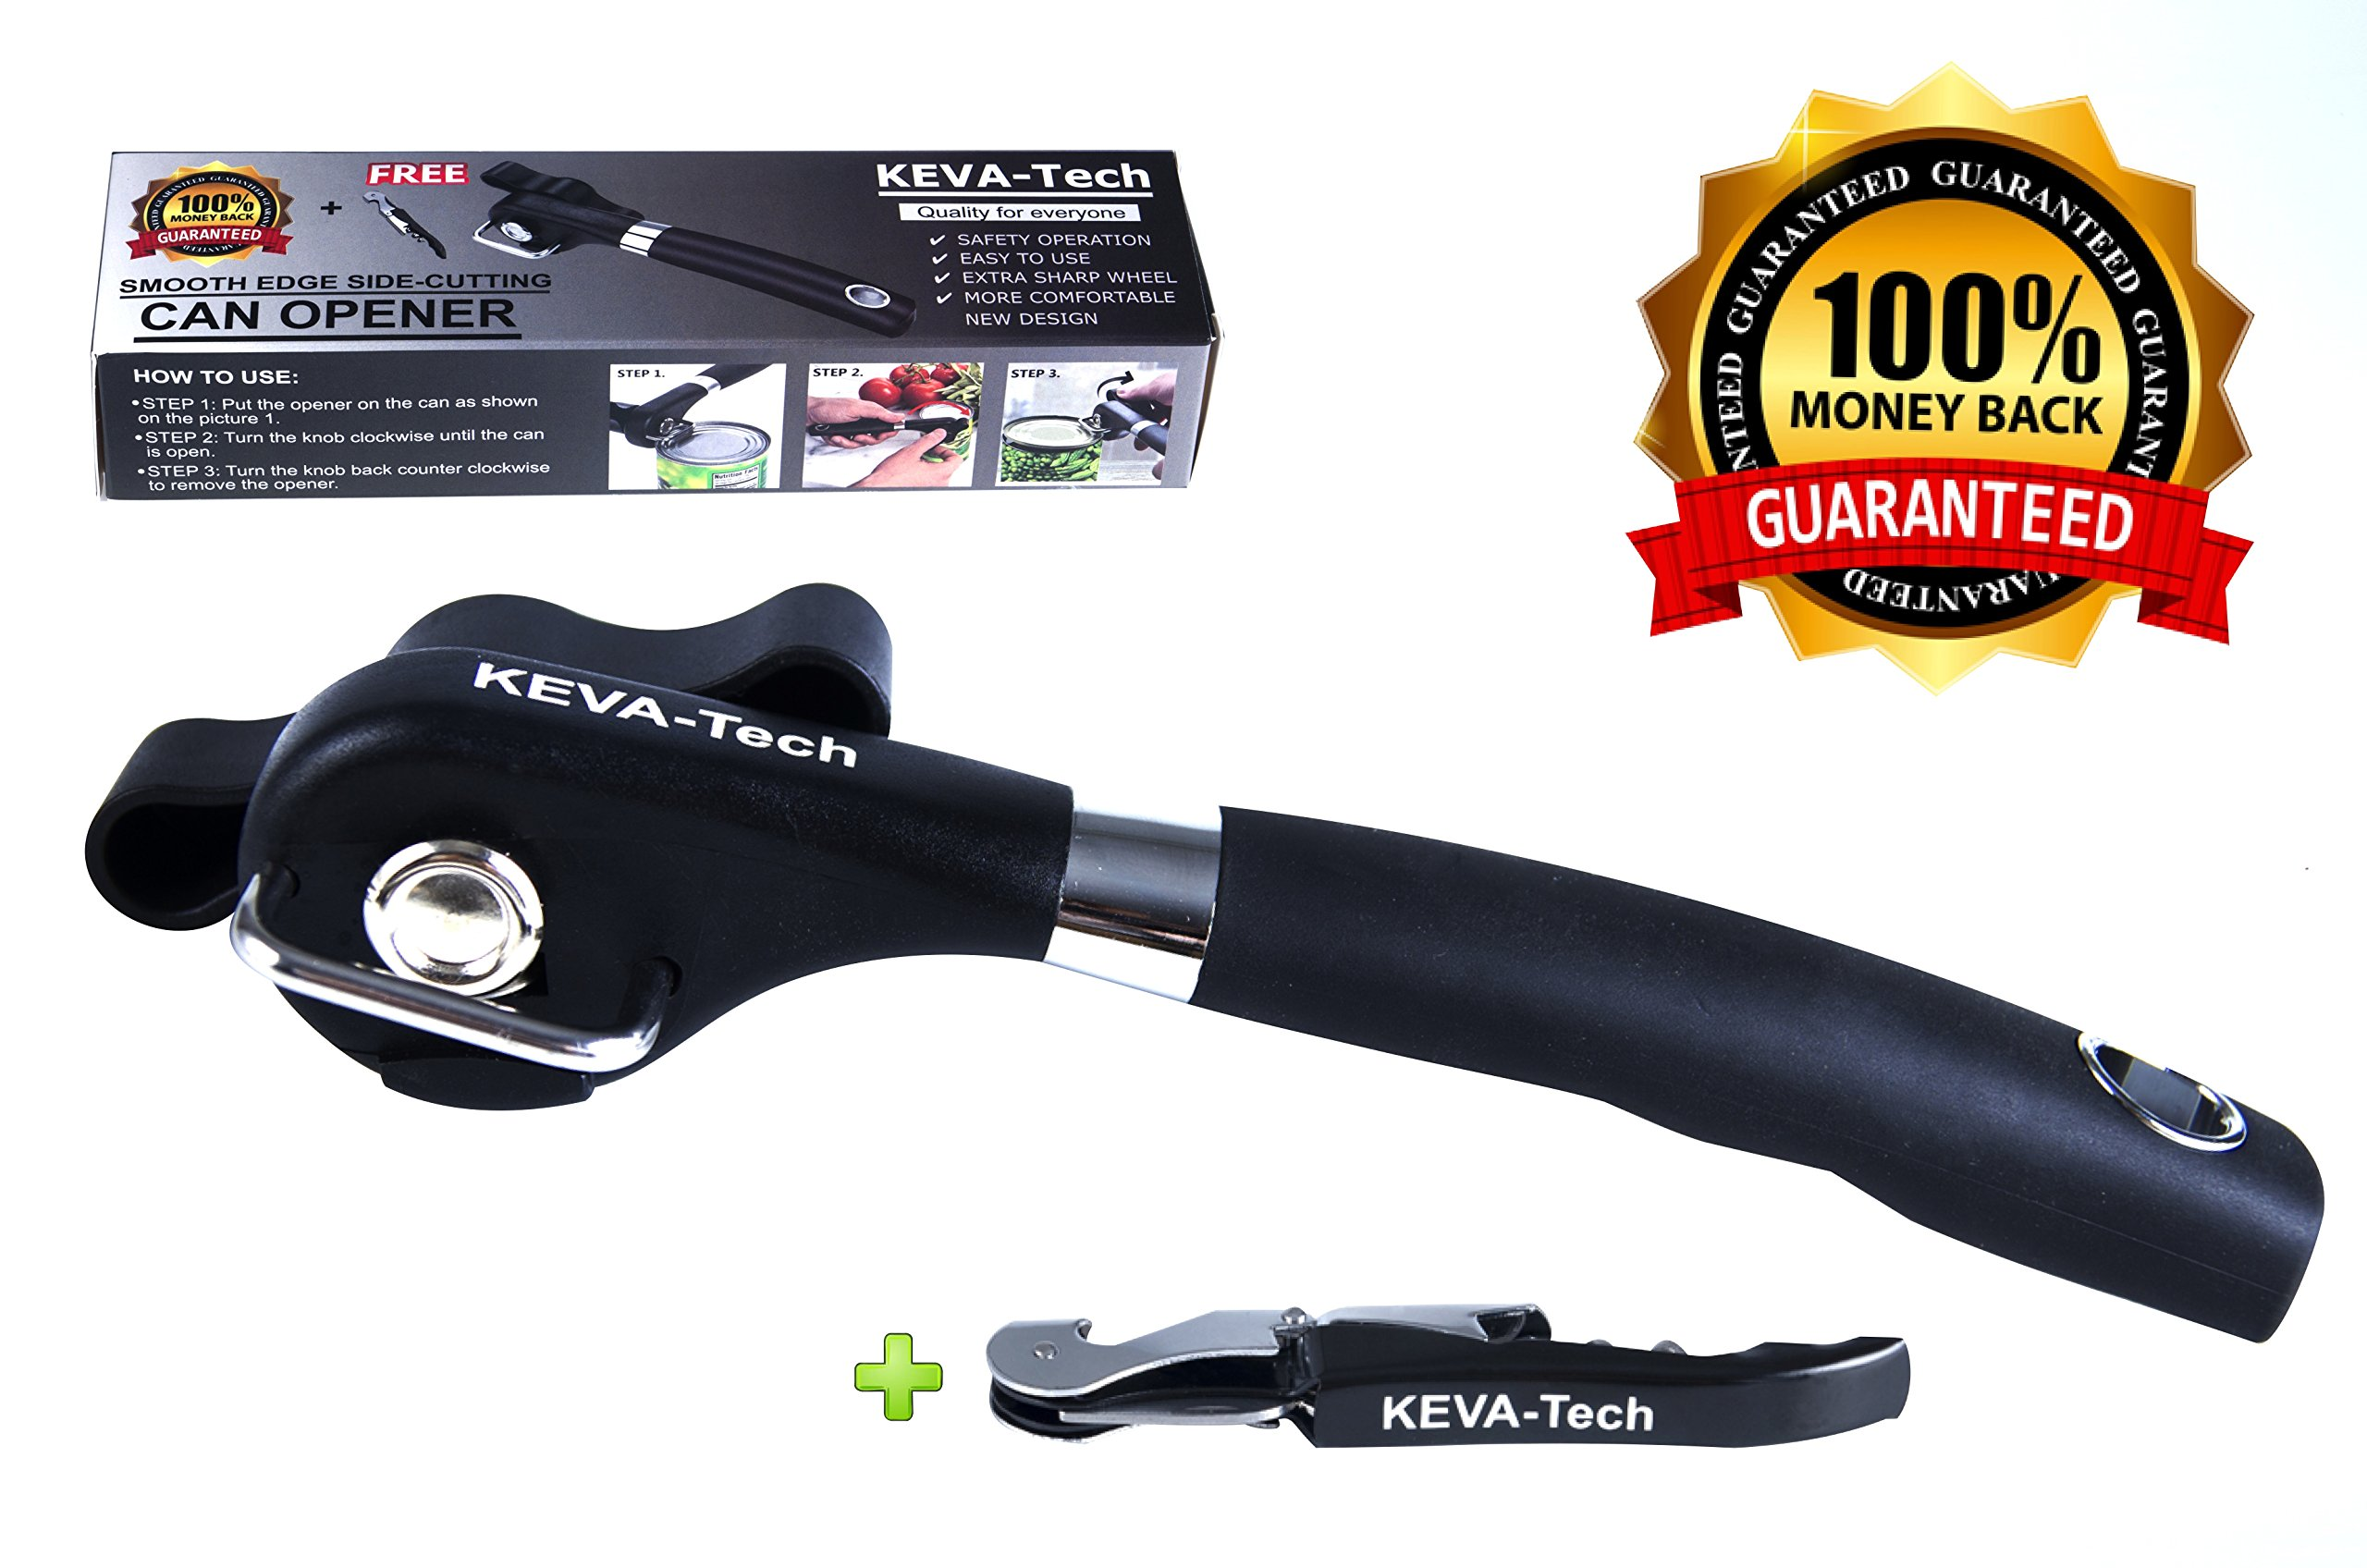 Best Quality Manual Can Opener by KEVA-Tech, Professional Smooth Edge Can Opener with Bottle Opener, Ergonomic Good Grips Handle, Safe/Easy to Use, No Rust Stainless Steel,